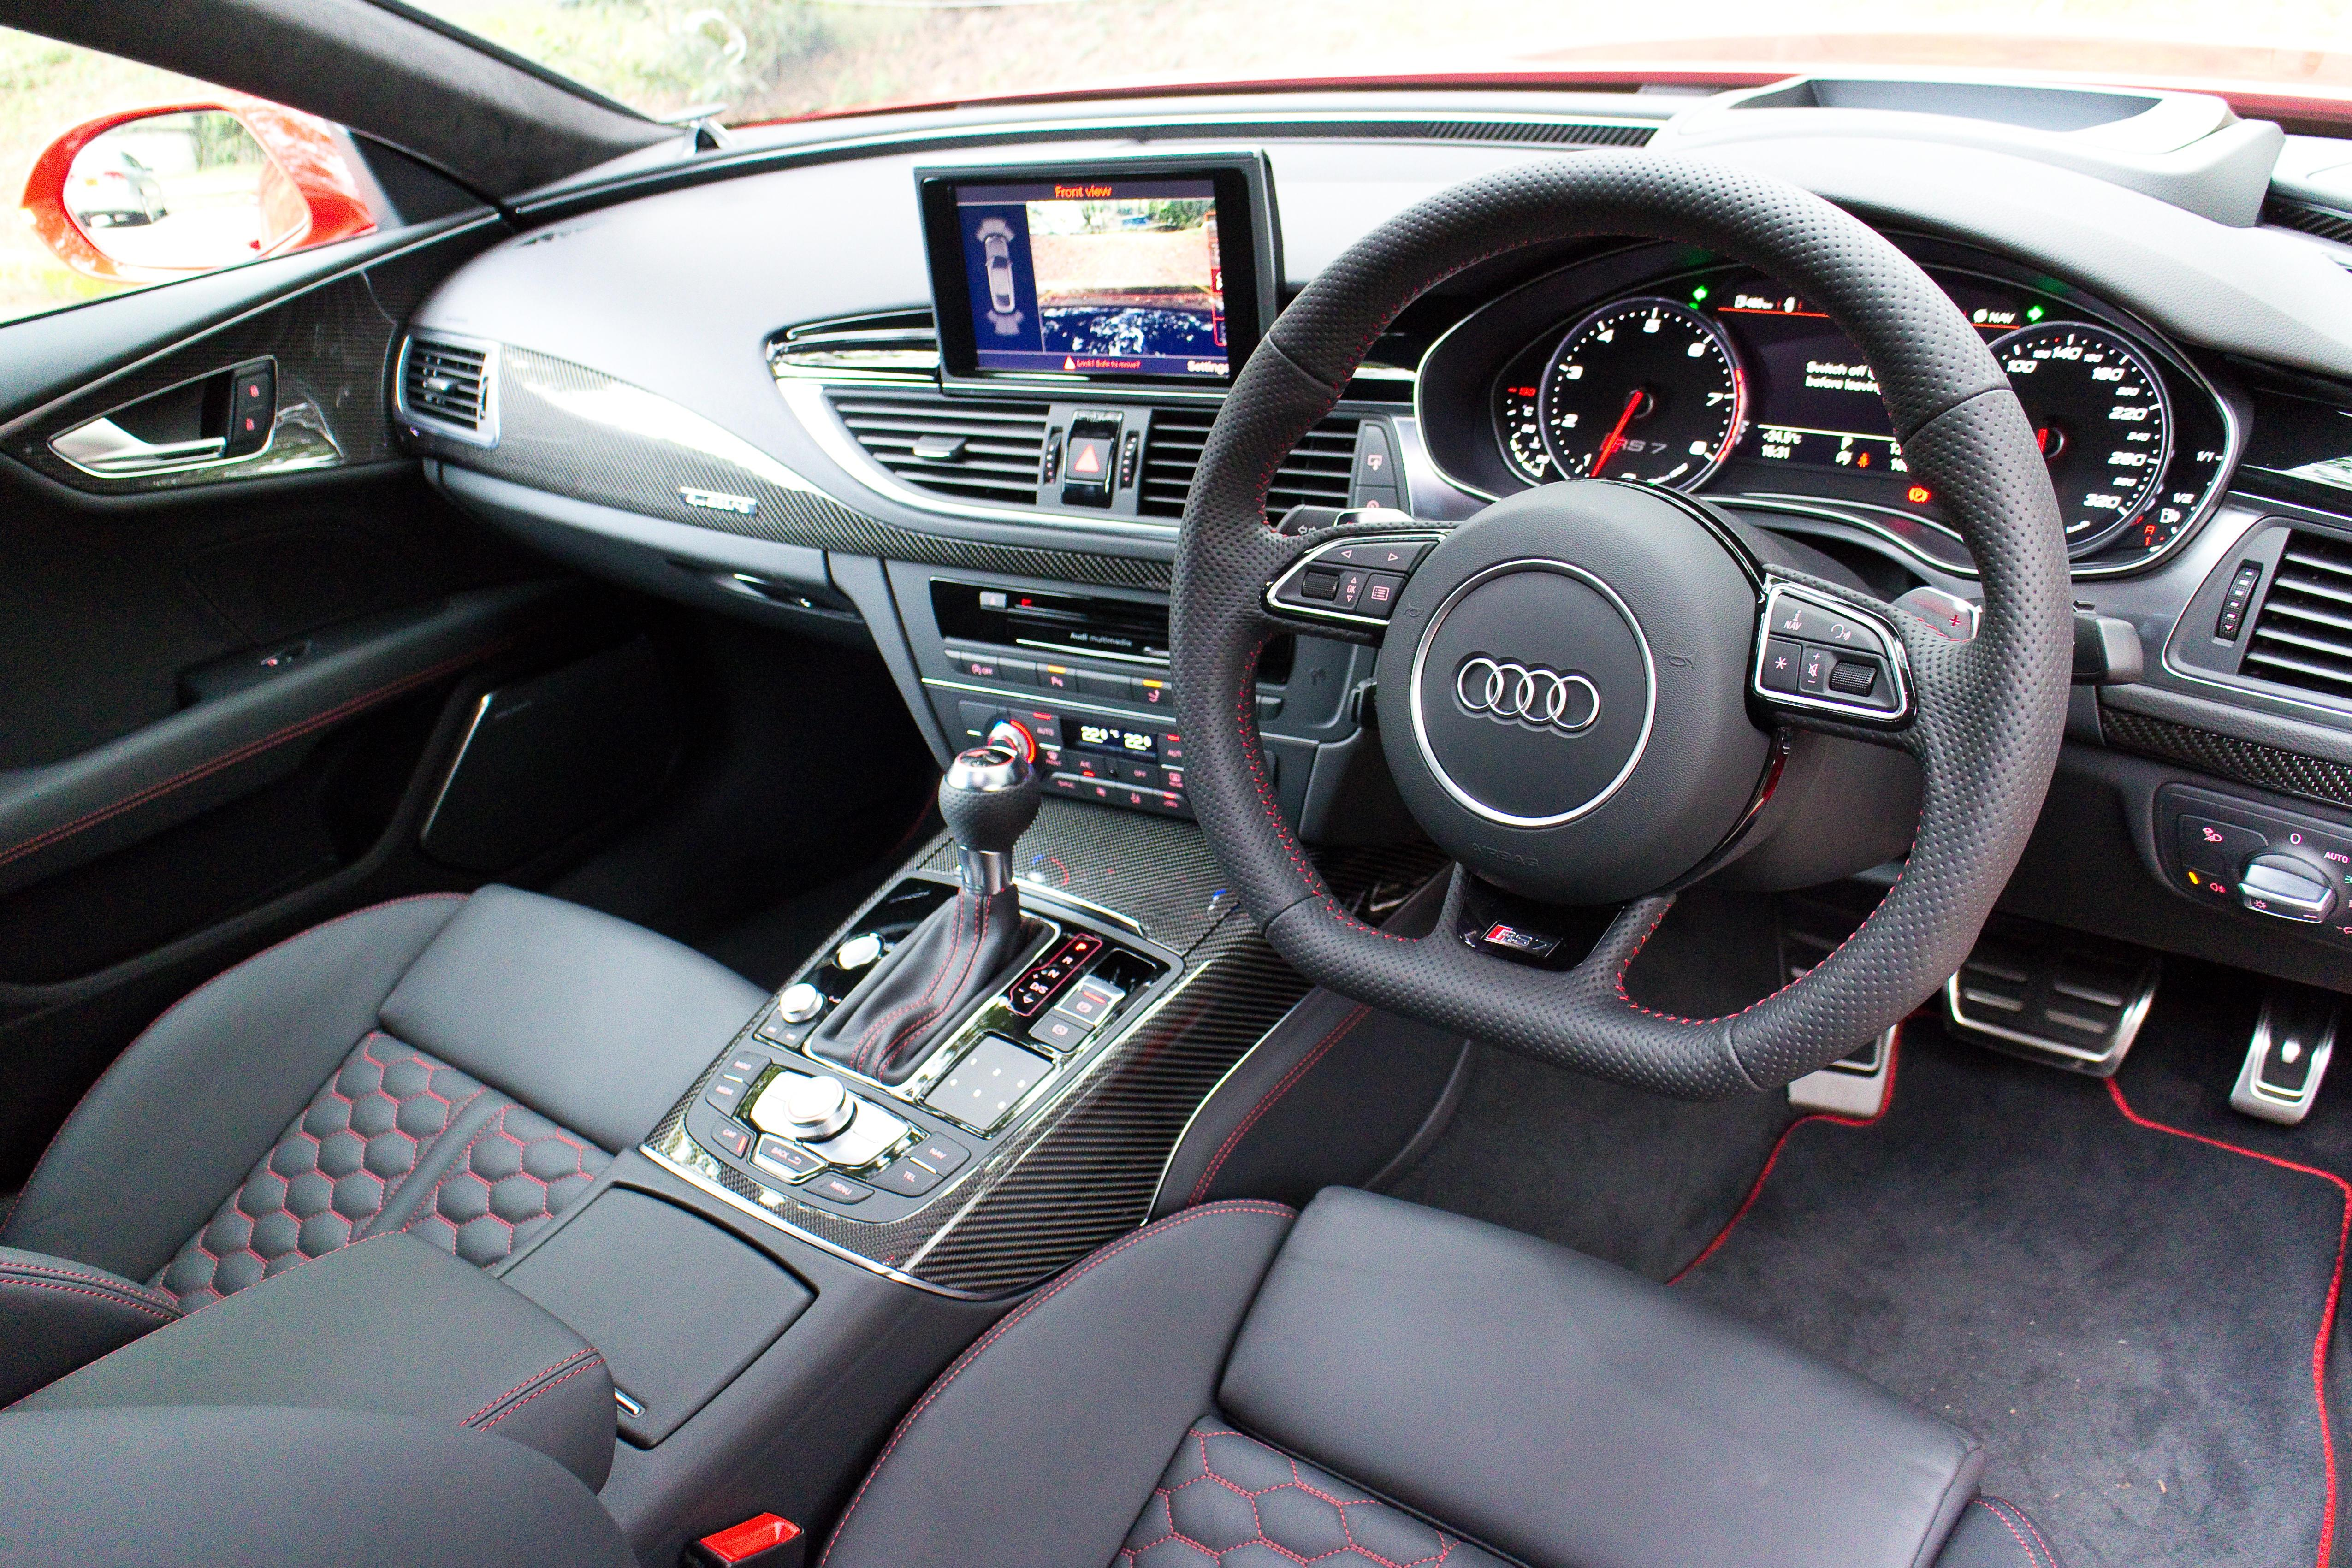 Like all Audis today the interior is as classy as it comes